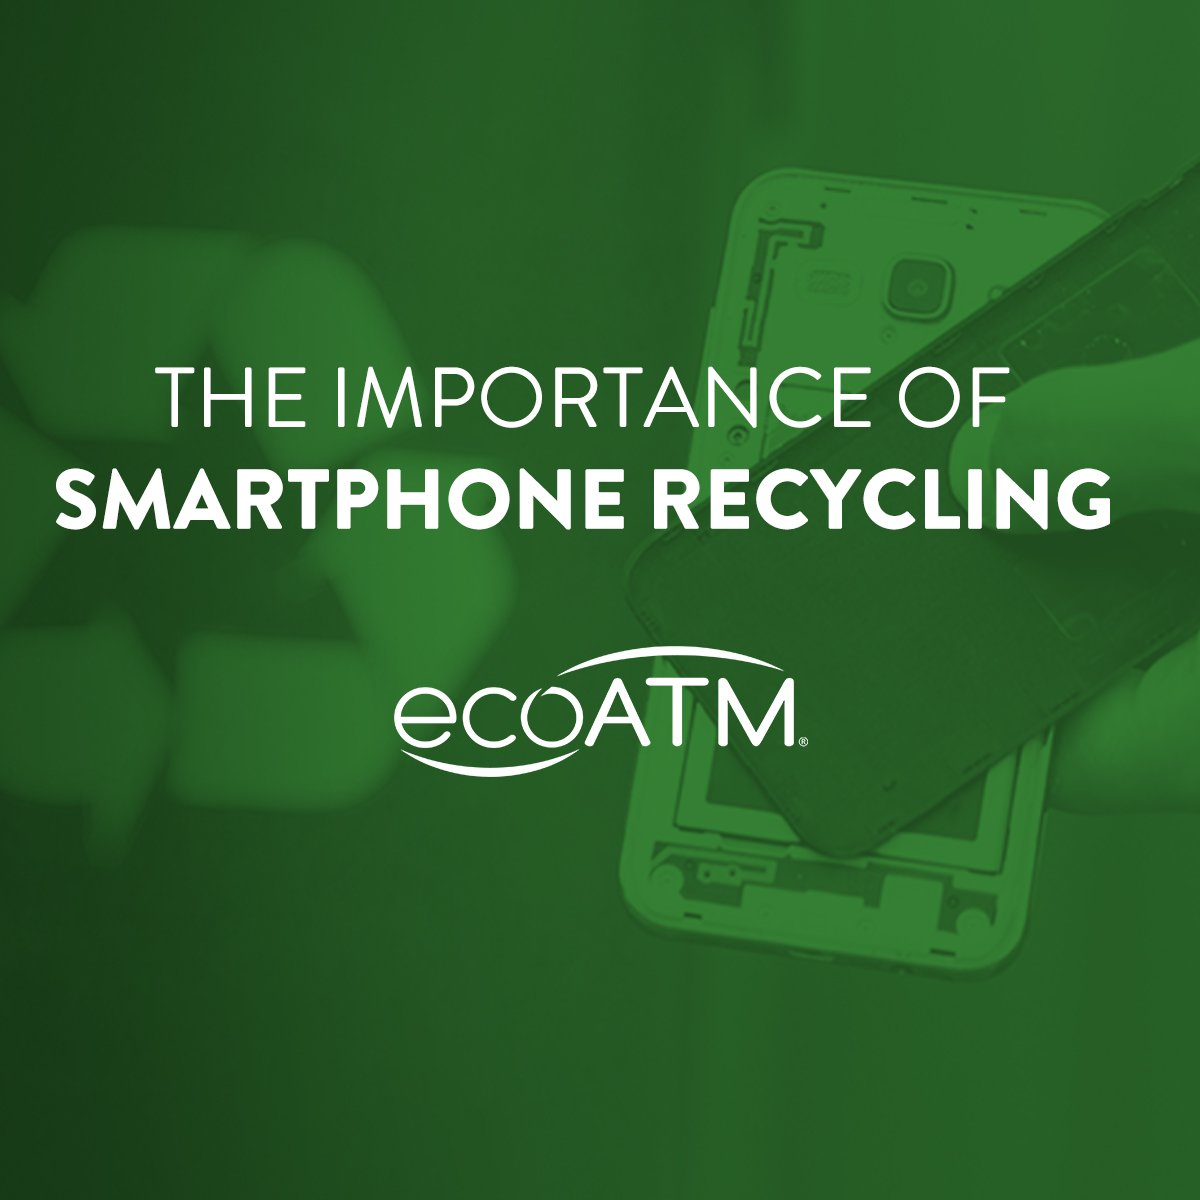 he importance of smartphone recycling